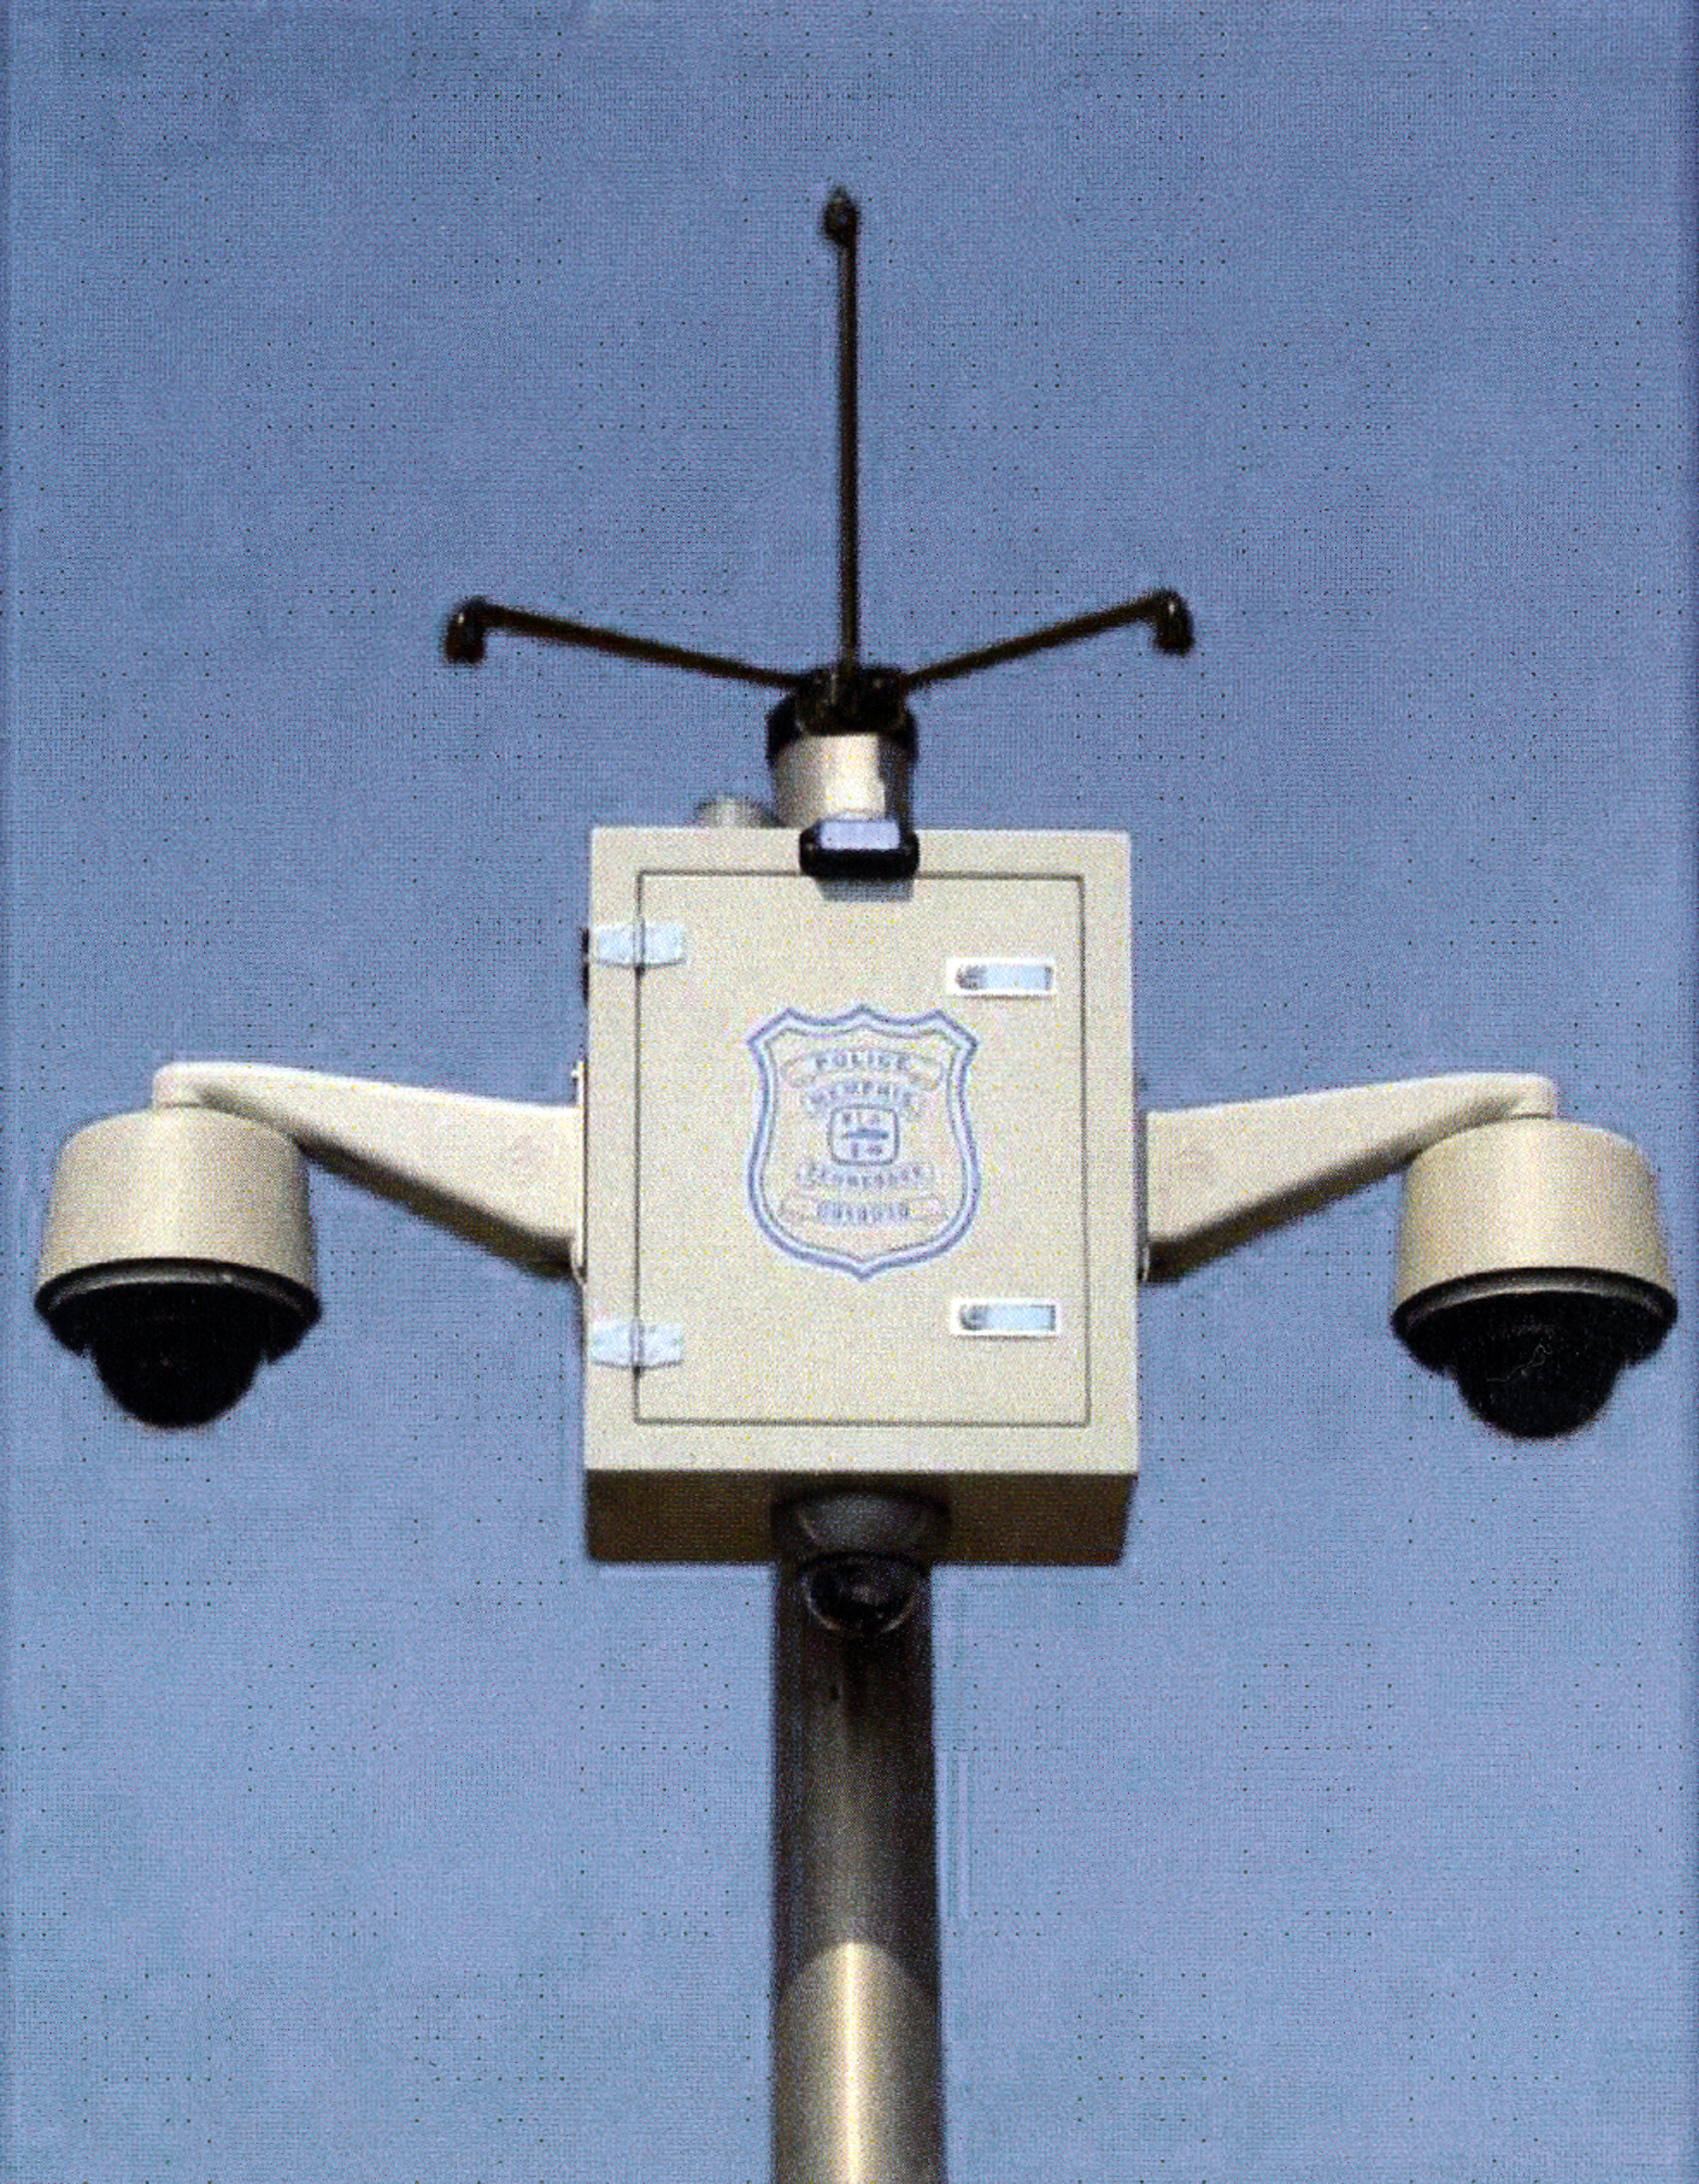 Company: Locals to work on police camera project